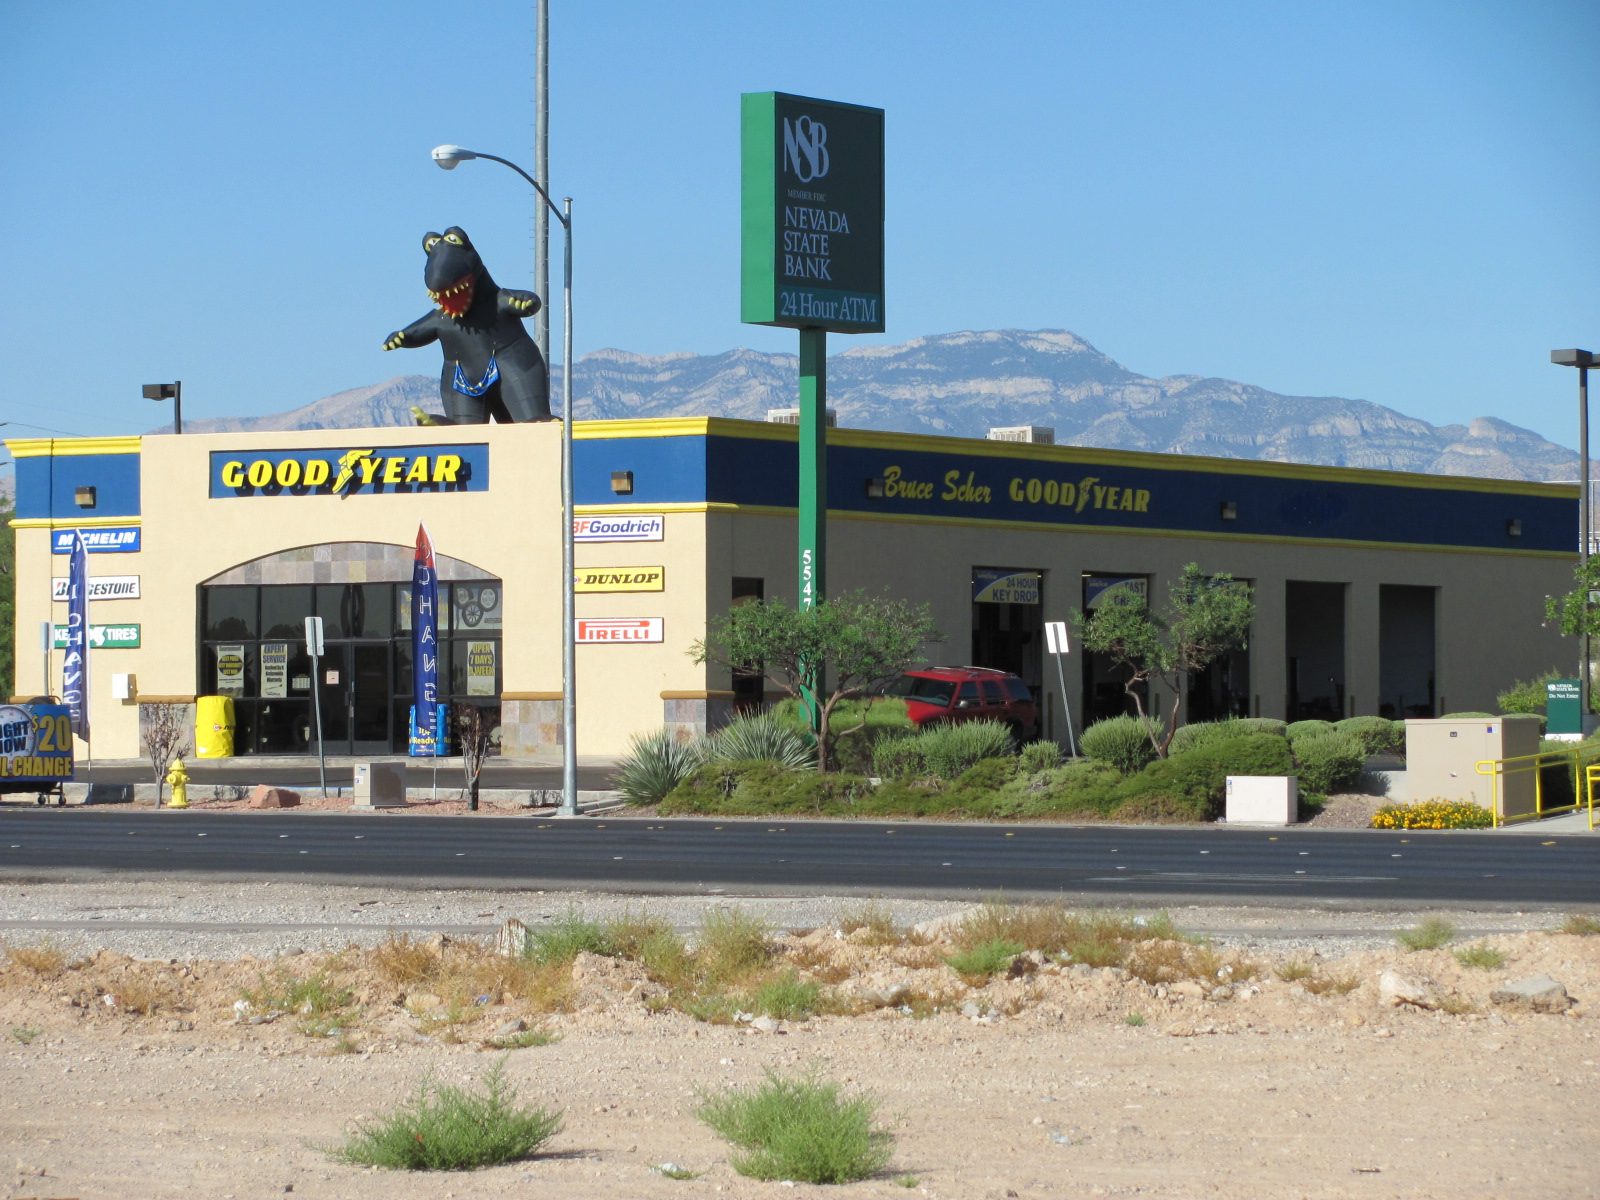 Goodyear Tire Store Near Me >> Superior Tire - Goodyear Auto Service Center Coupons near me in las vegas | 8coupons